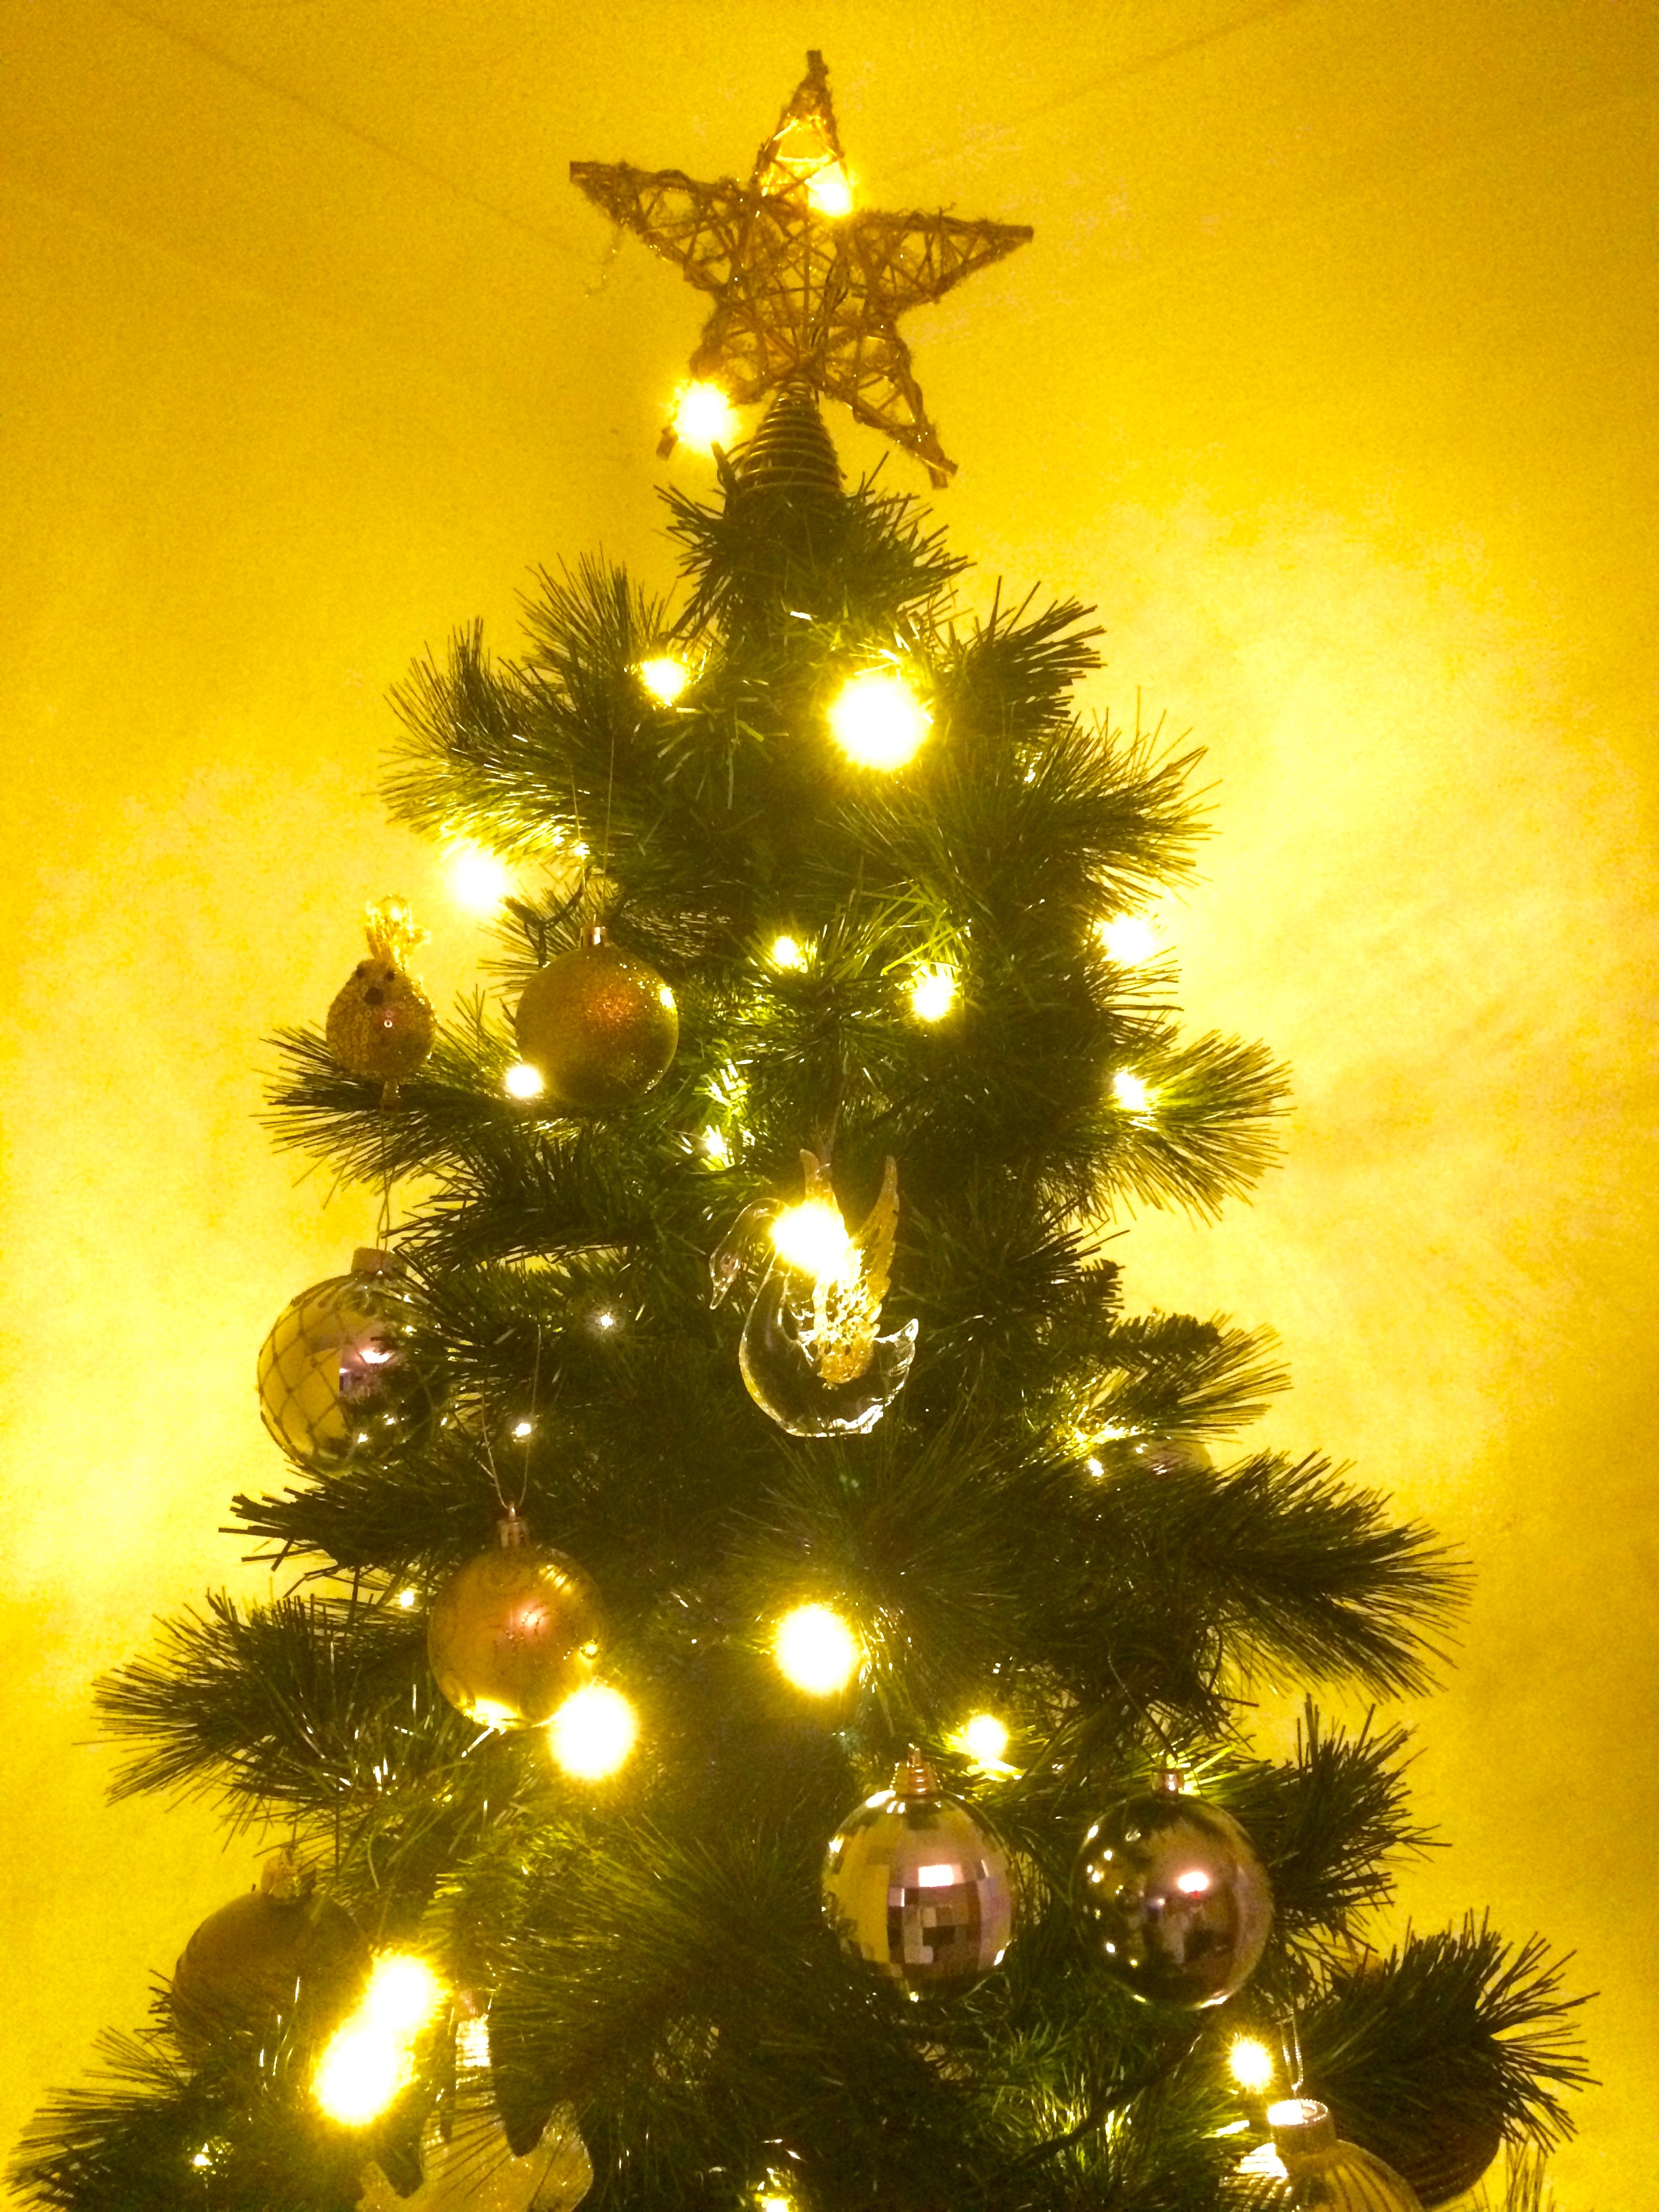 My Christmas Tree Light Recommendation…. Diy Christmas Decorations Pasta. Christmas Decorations Large. Christmas Decorations And Craft Ideas. Target White Christmas Decorations. Make Your Own Christmas Decorations John Lewis. Christmas Wreath Decorations Wholesale. Christmas Decoration Hire Scotland. Outdoor Christmas Decorations Meijer